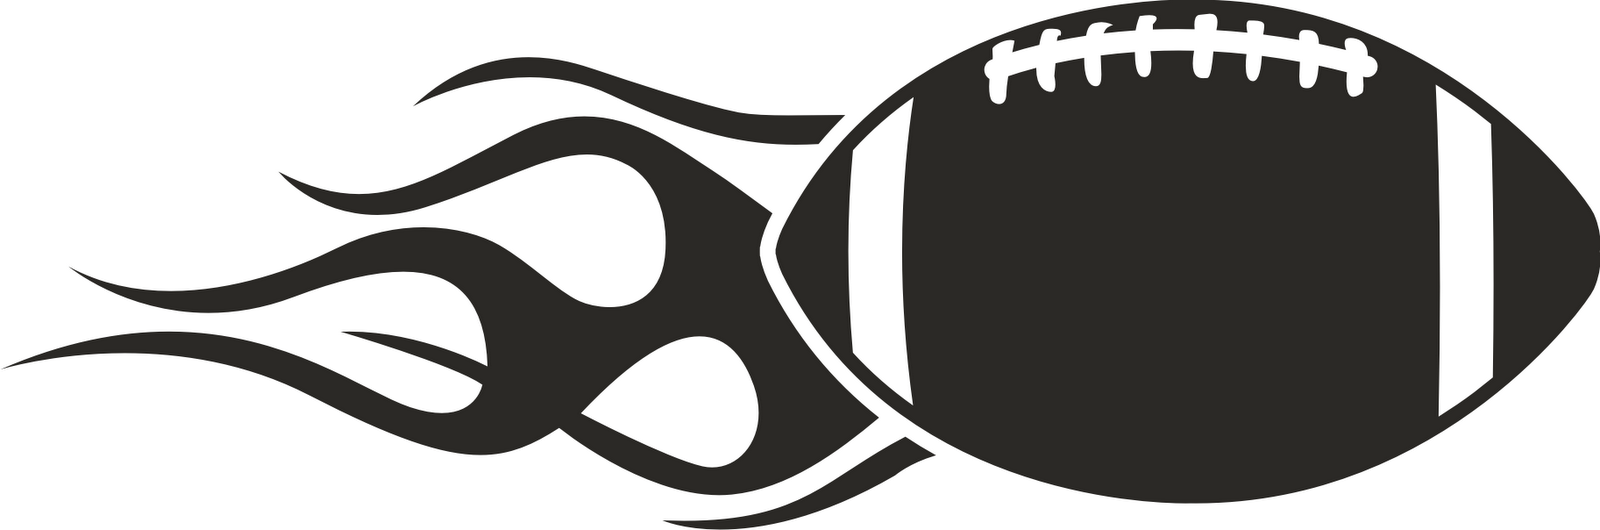 1600x530 Football Tackle Clipart Group